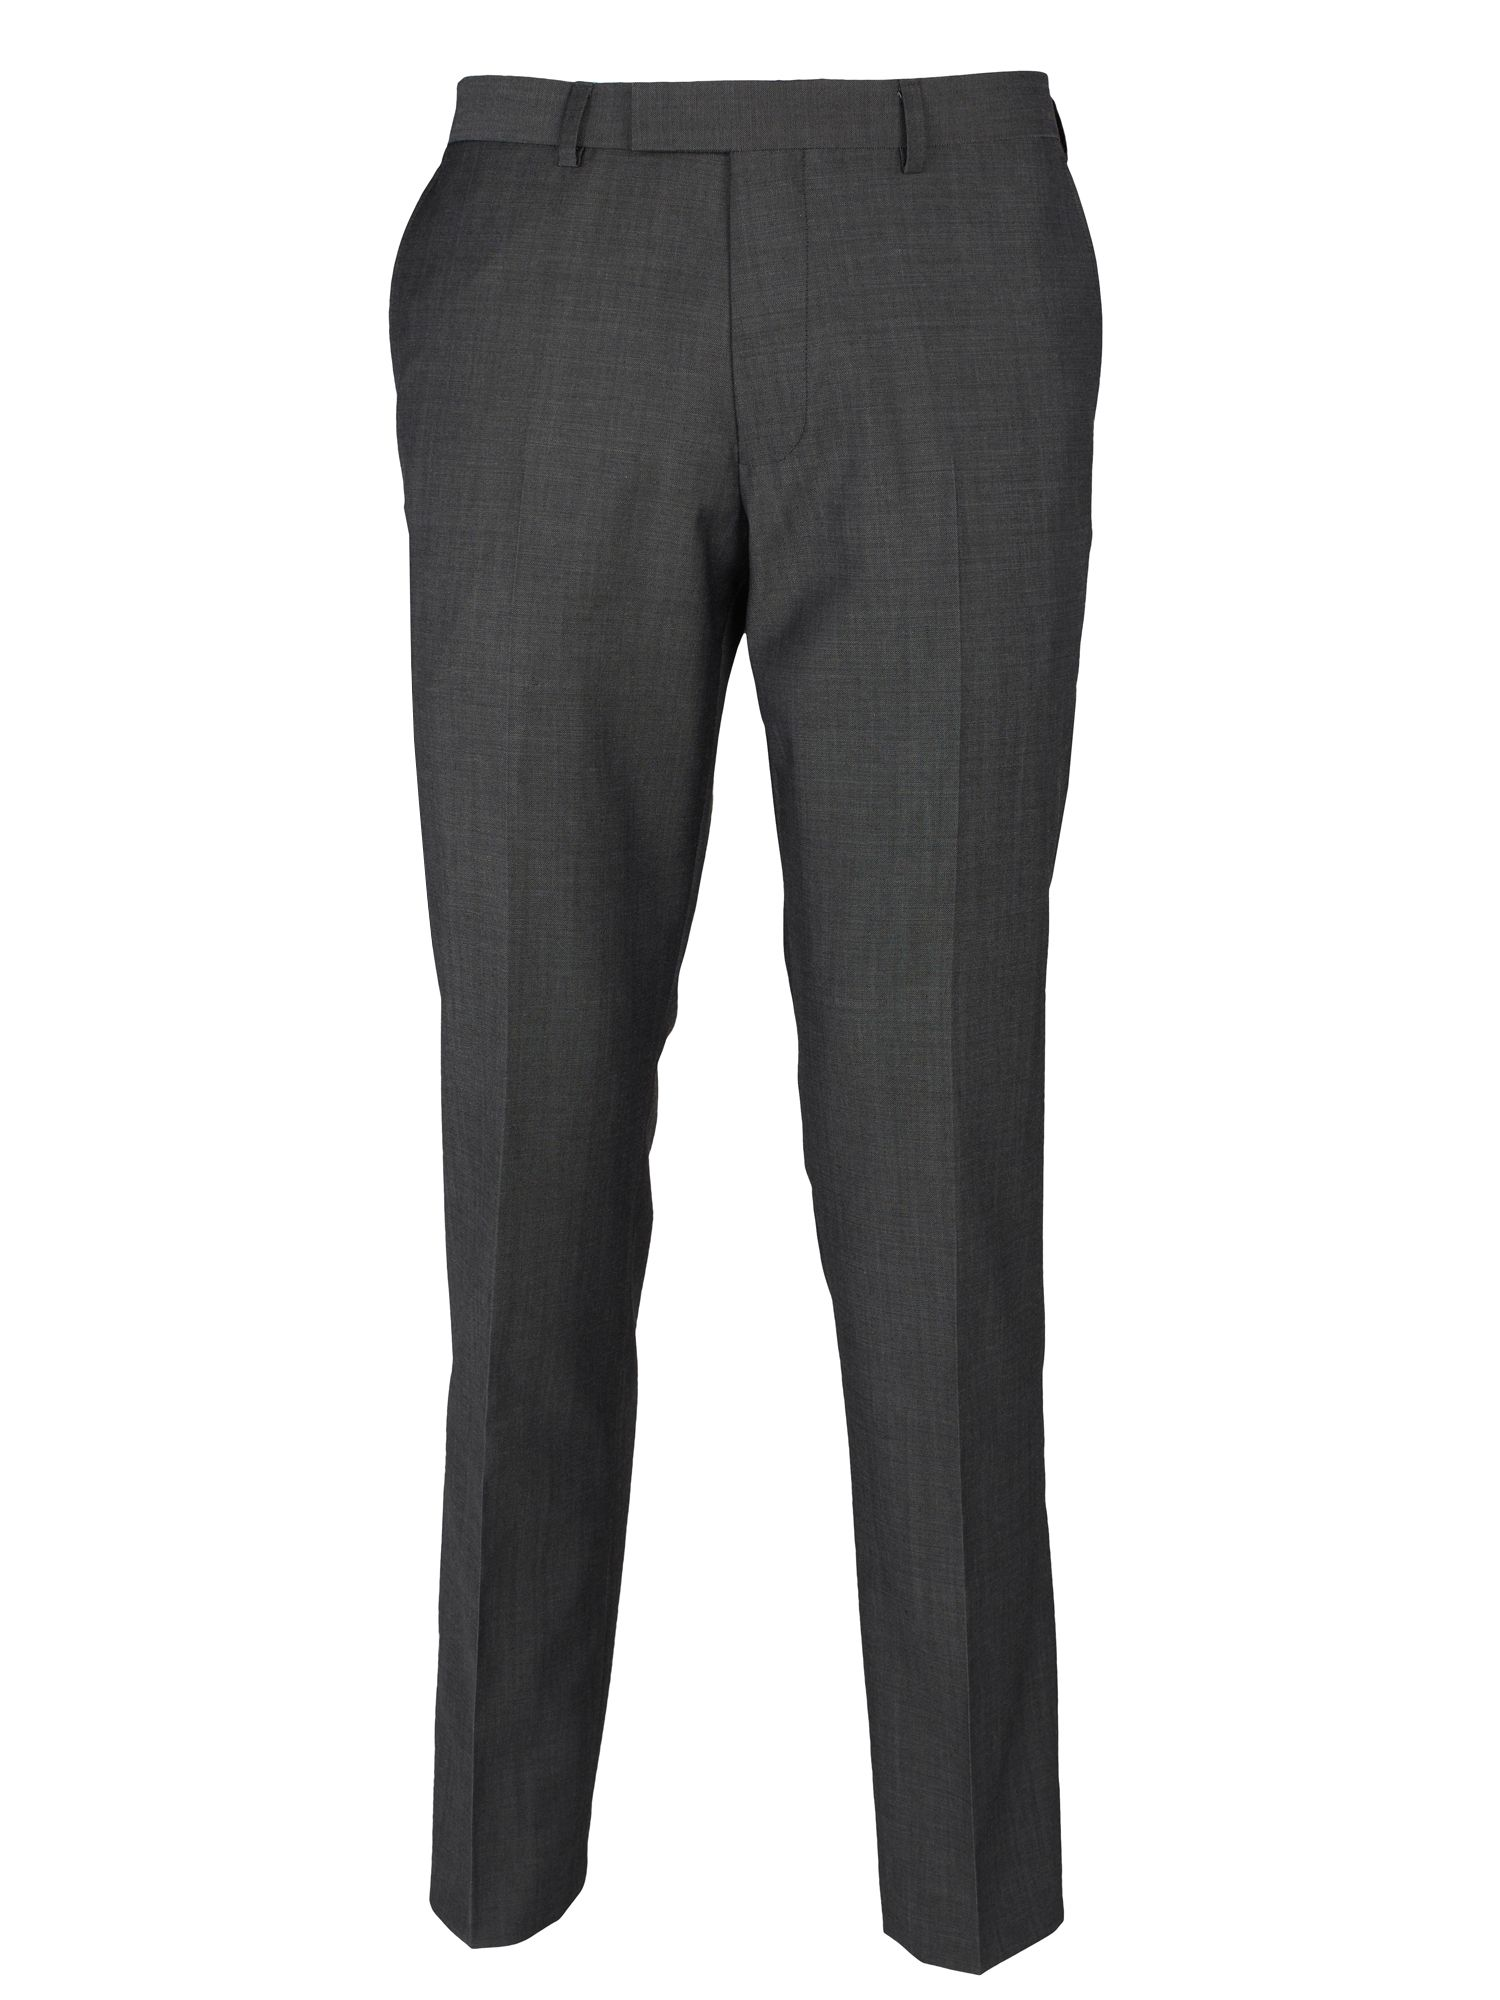 Grey tonic slimfit trousers